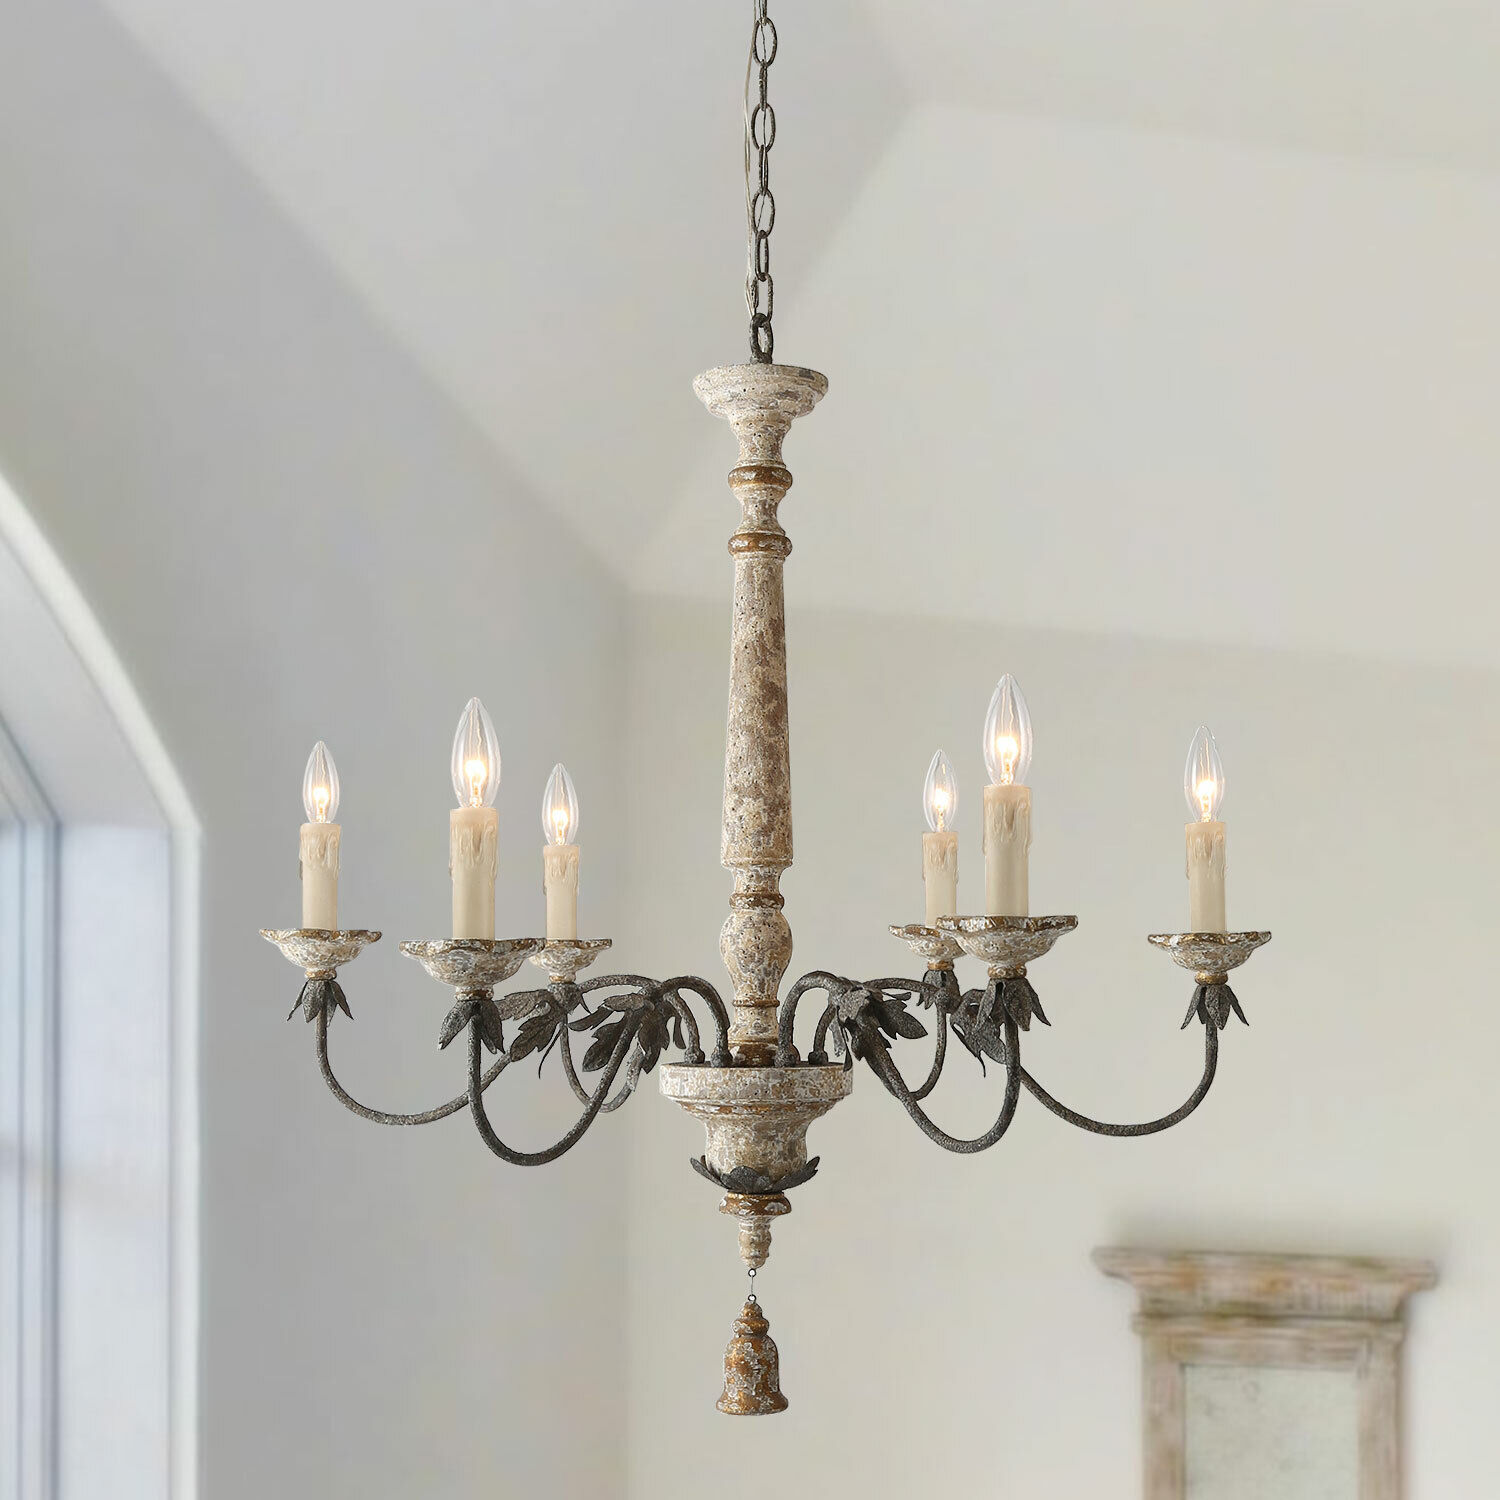 Farmhouse Distressed Antique White 5 Light Wood Chandeliers For Sale Online Ebay